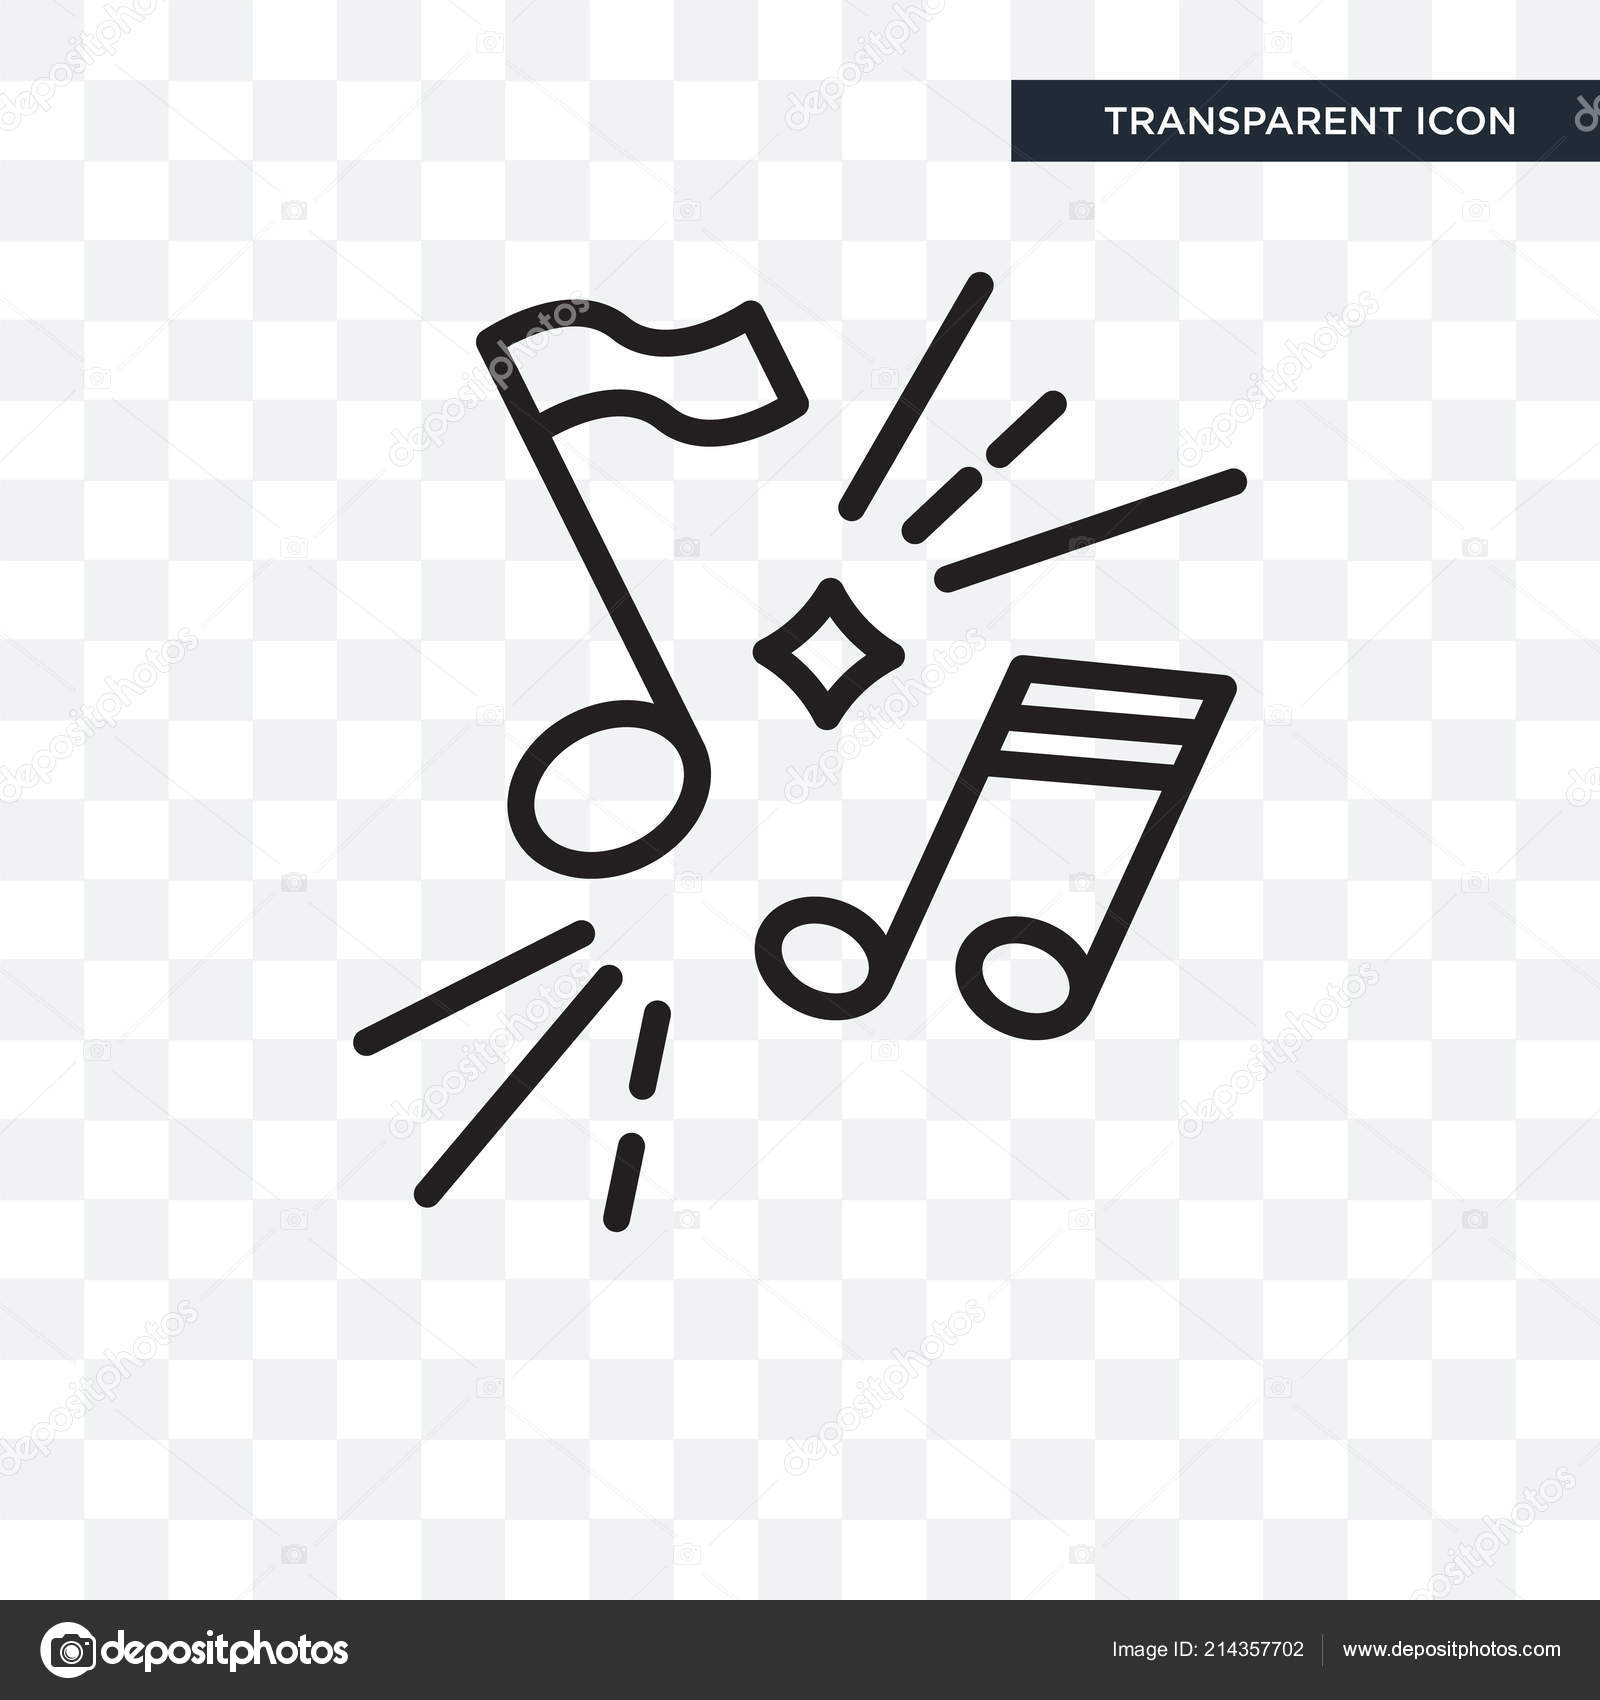 Music vector icon isolated on transparent background, Music